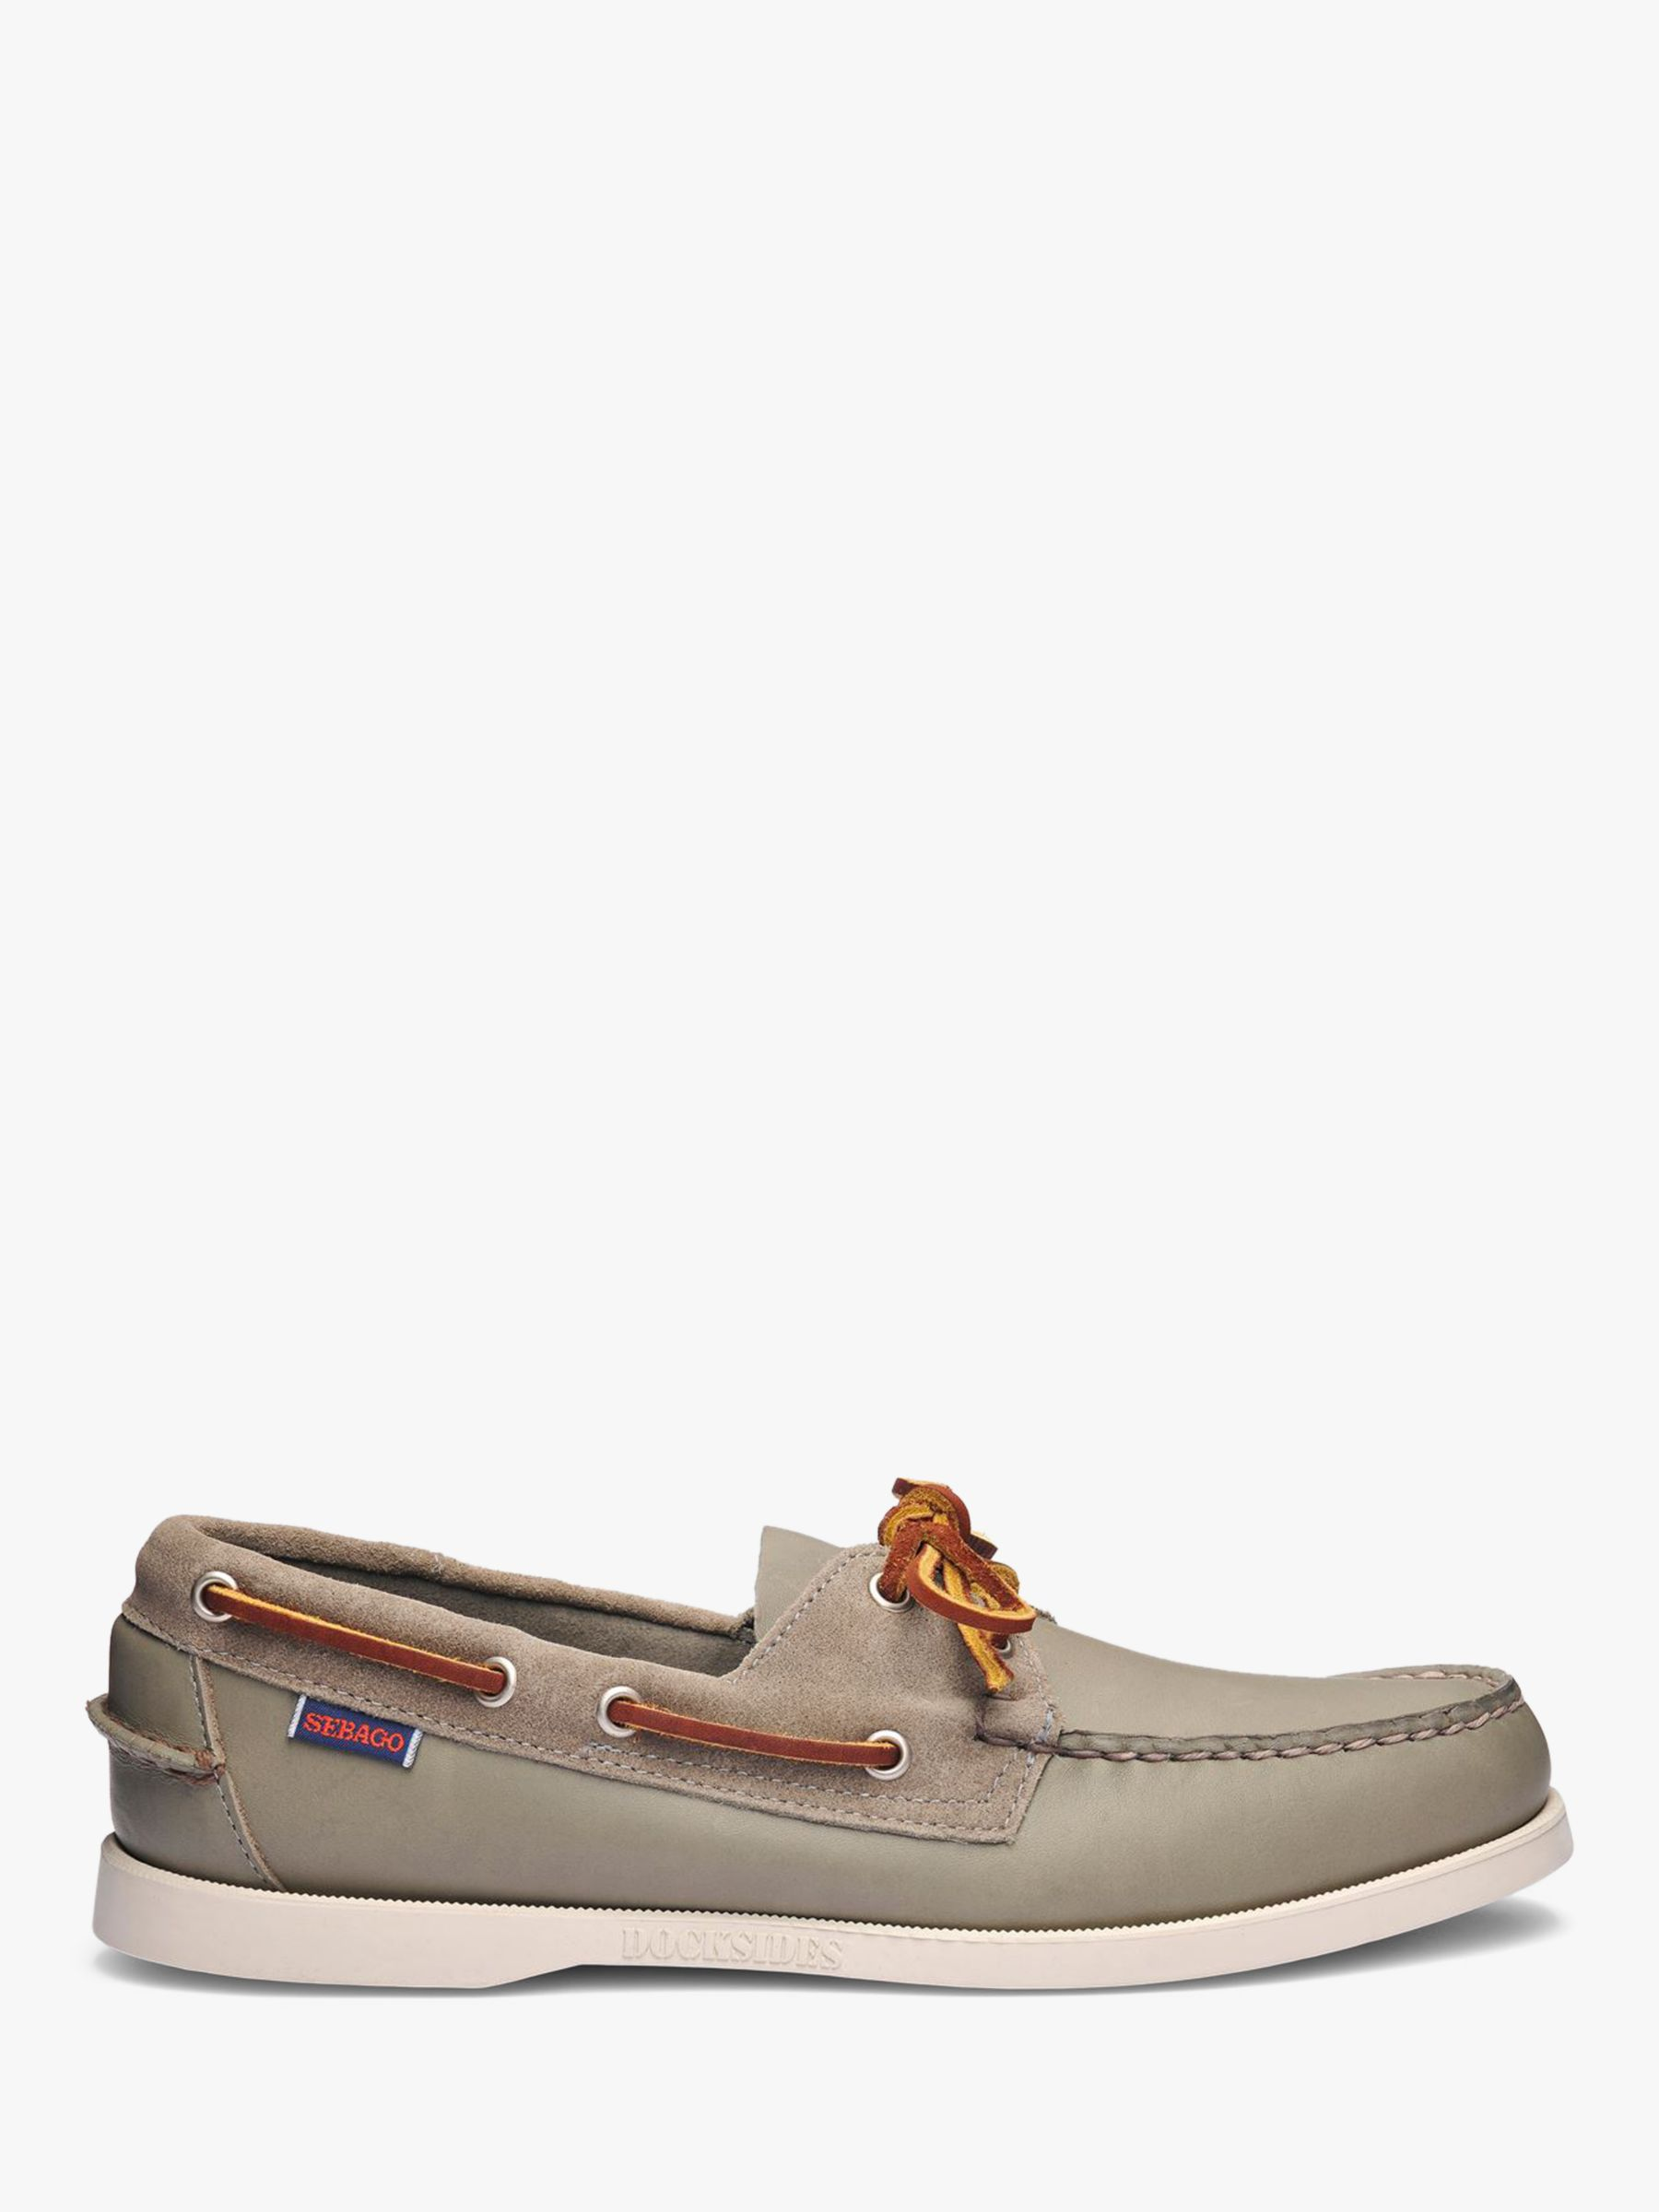 Sebago Sebago Portland Winch Leather Boat Shoes, Green Sage